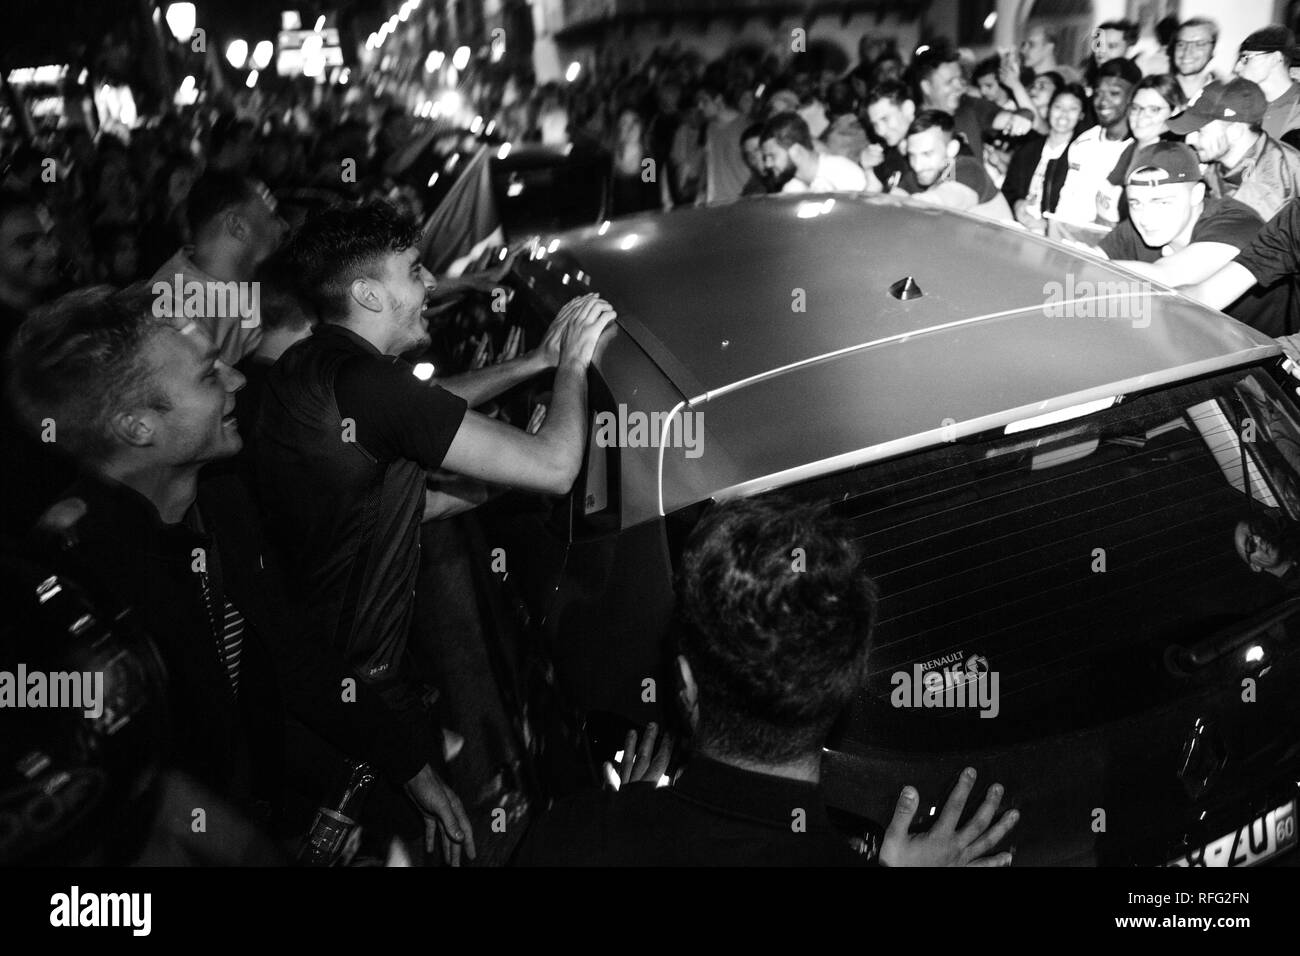 STRASBOURG, FRANCE - JULY 10, 2018: Unique French celebration after the victory of France qualify for the final of the 2018 FIFA World Cup after their victory - black and white - Stock Image